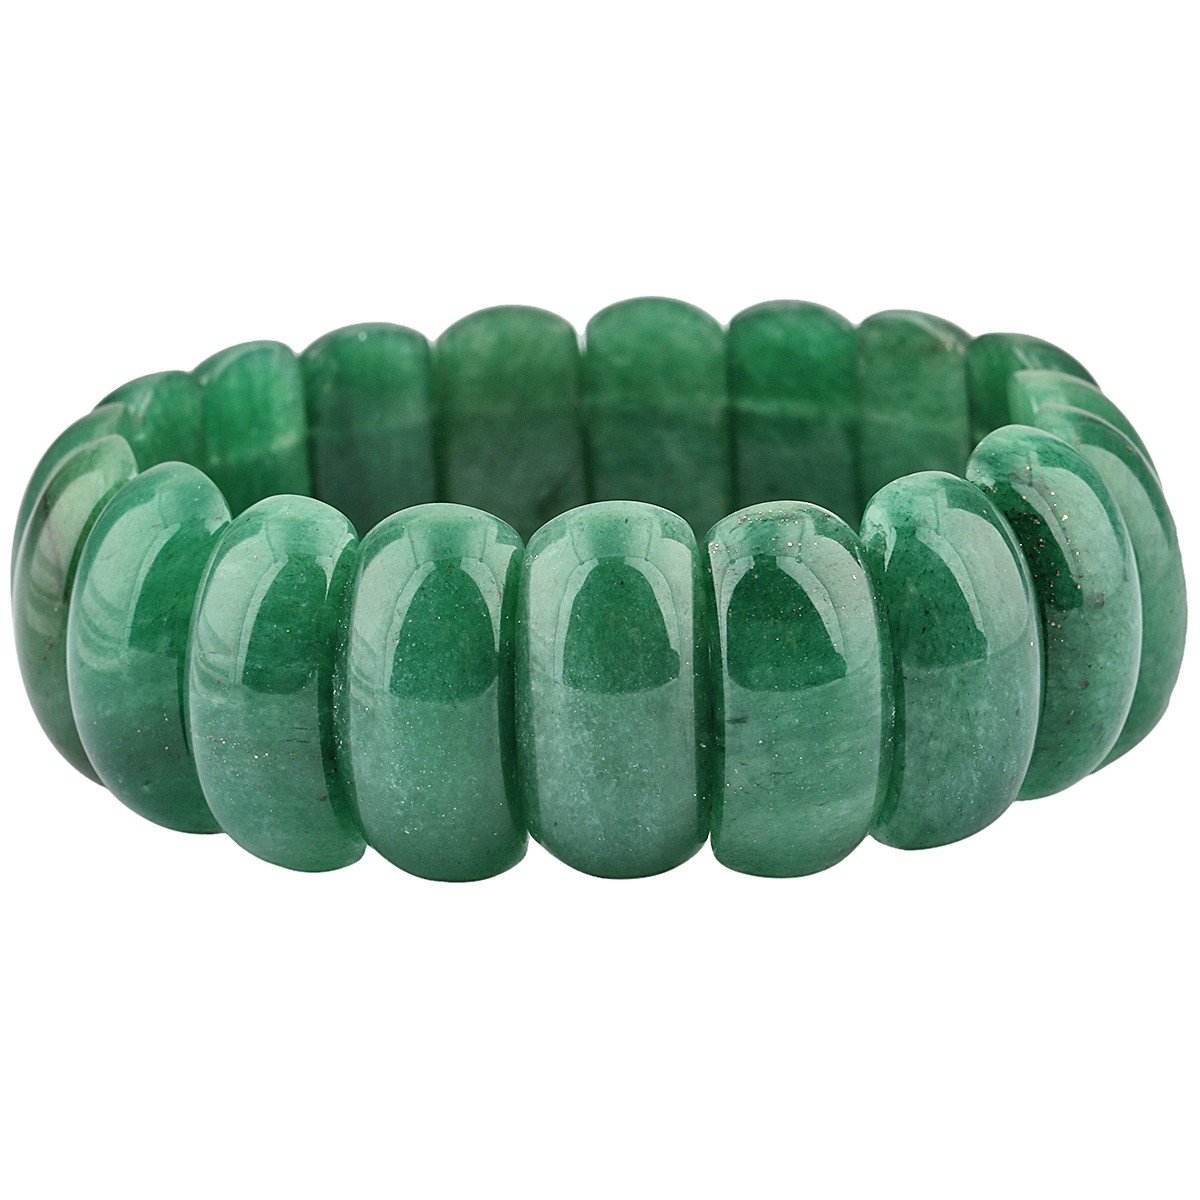 SUNYIK Oval Green Aventurine Bracelets for Women, Natural Crystal Stretch Bangle 8.5'' Unisex